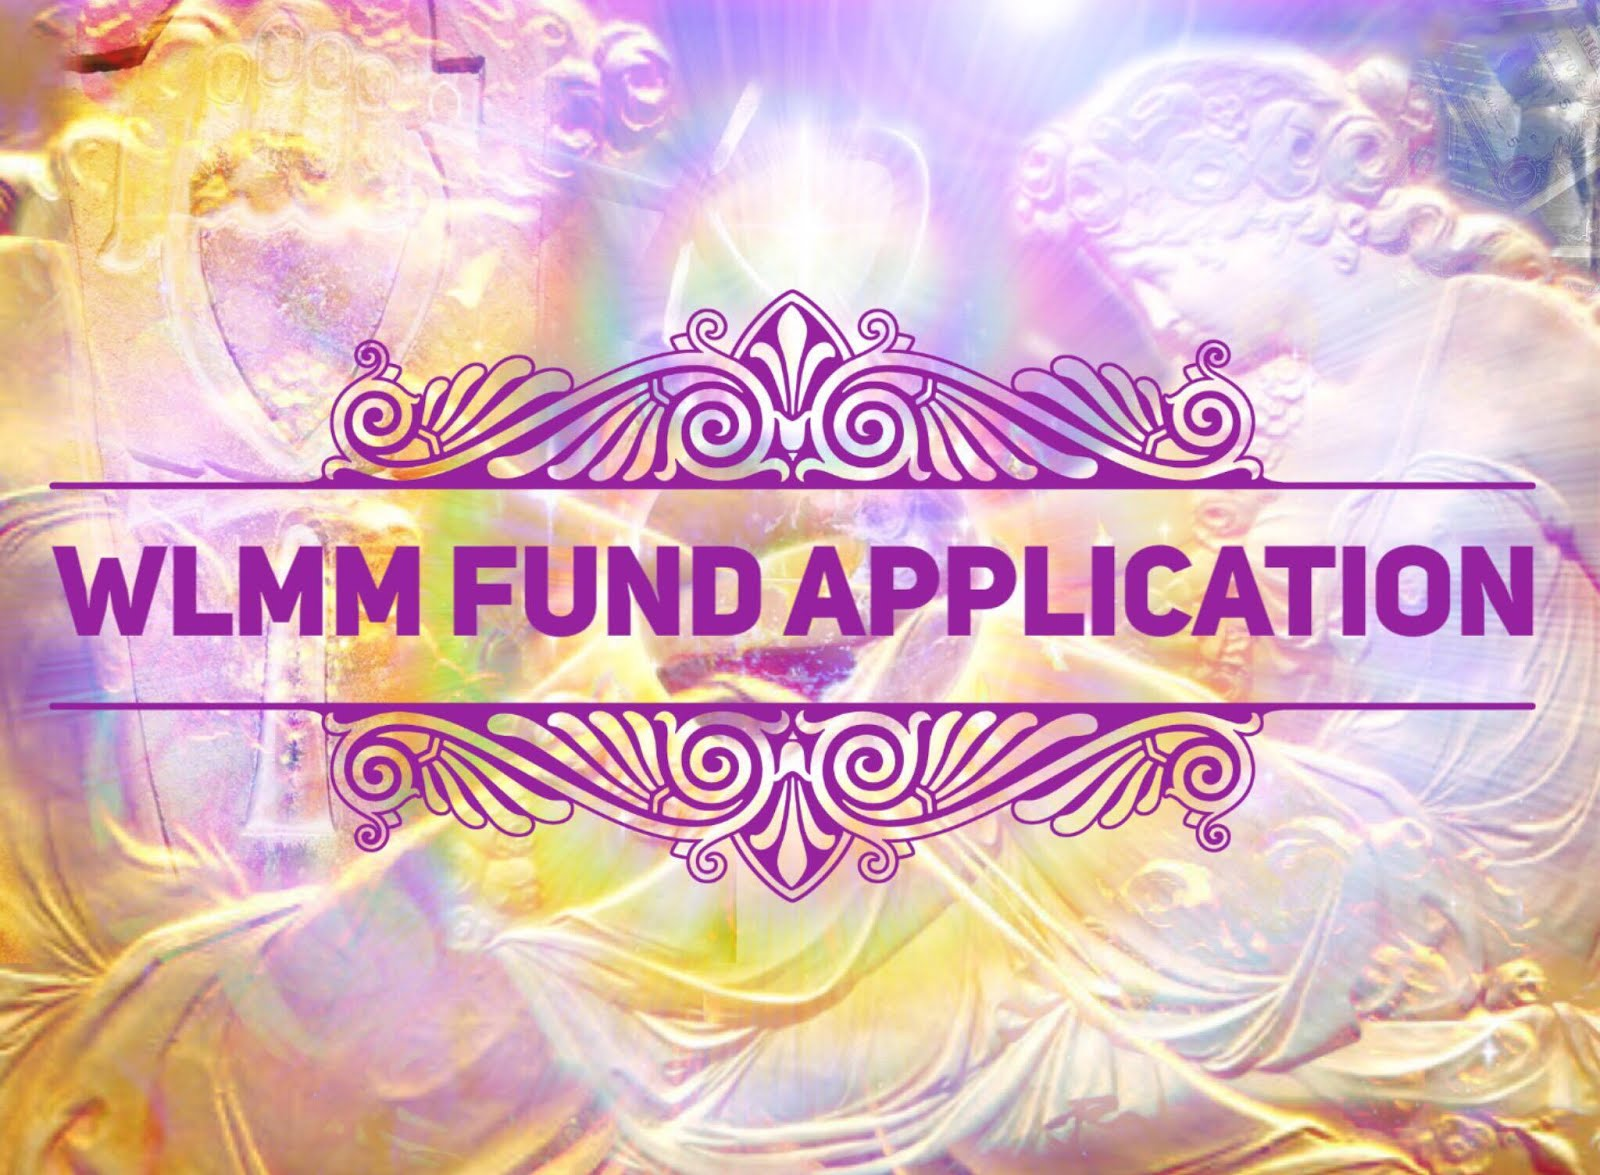 WLMM Fund Application click here